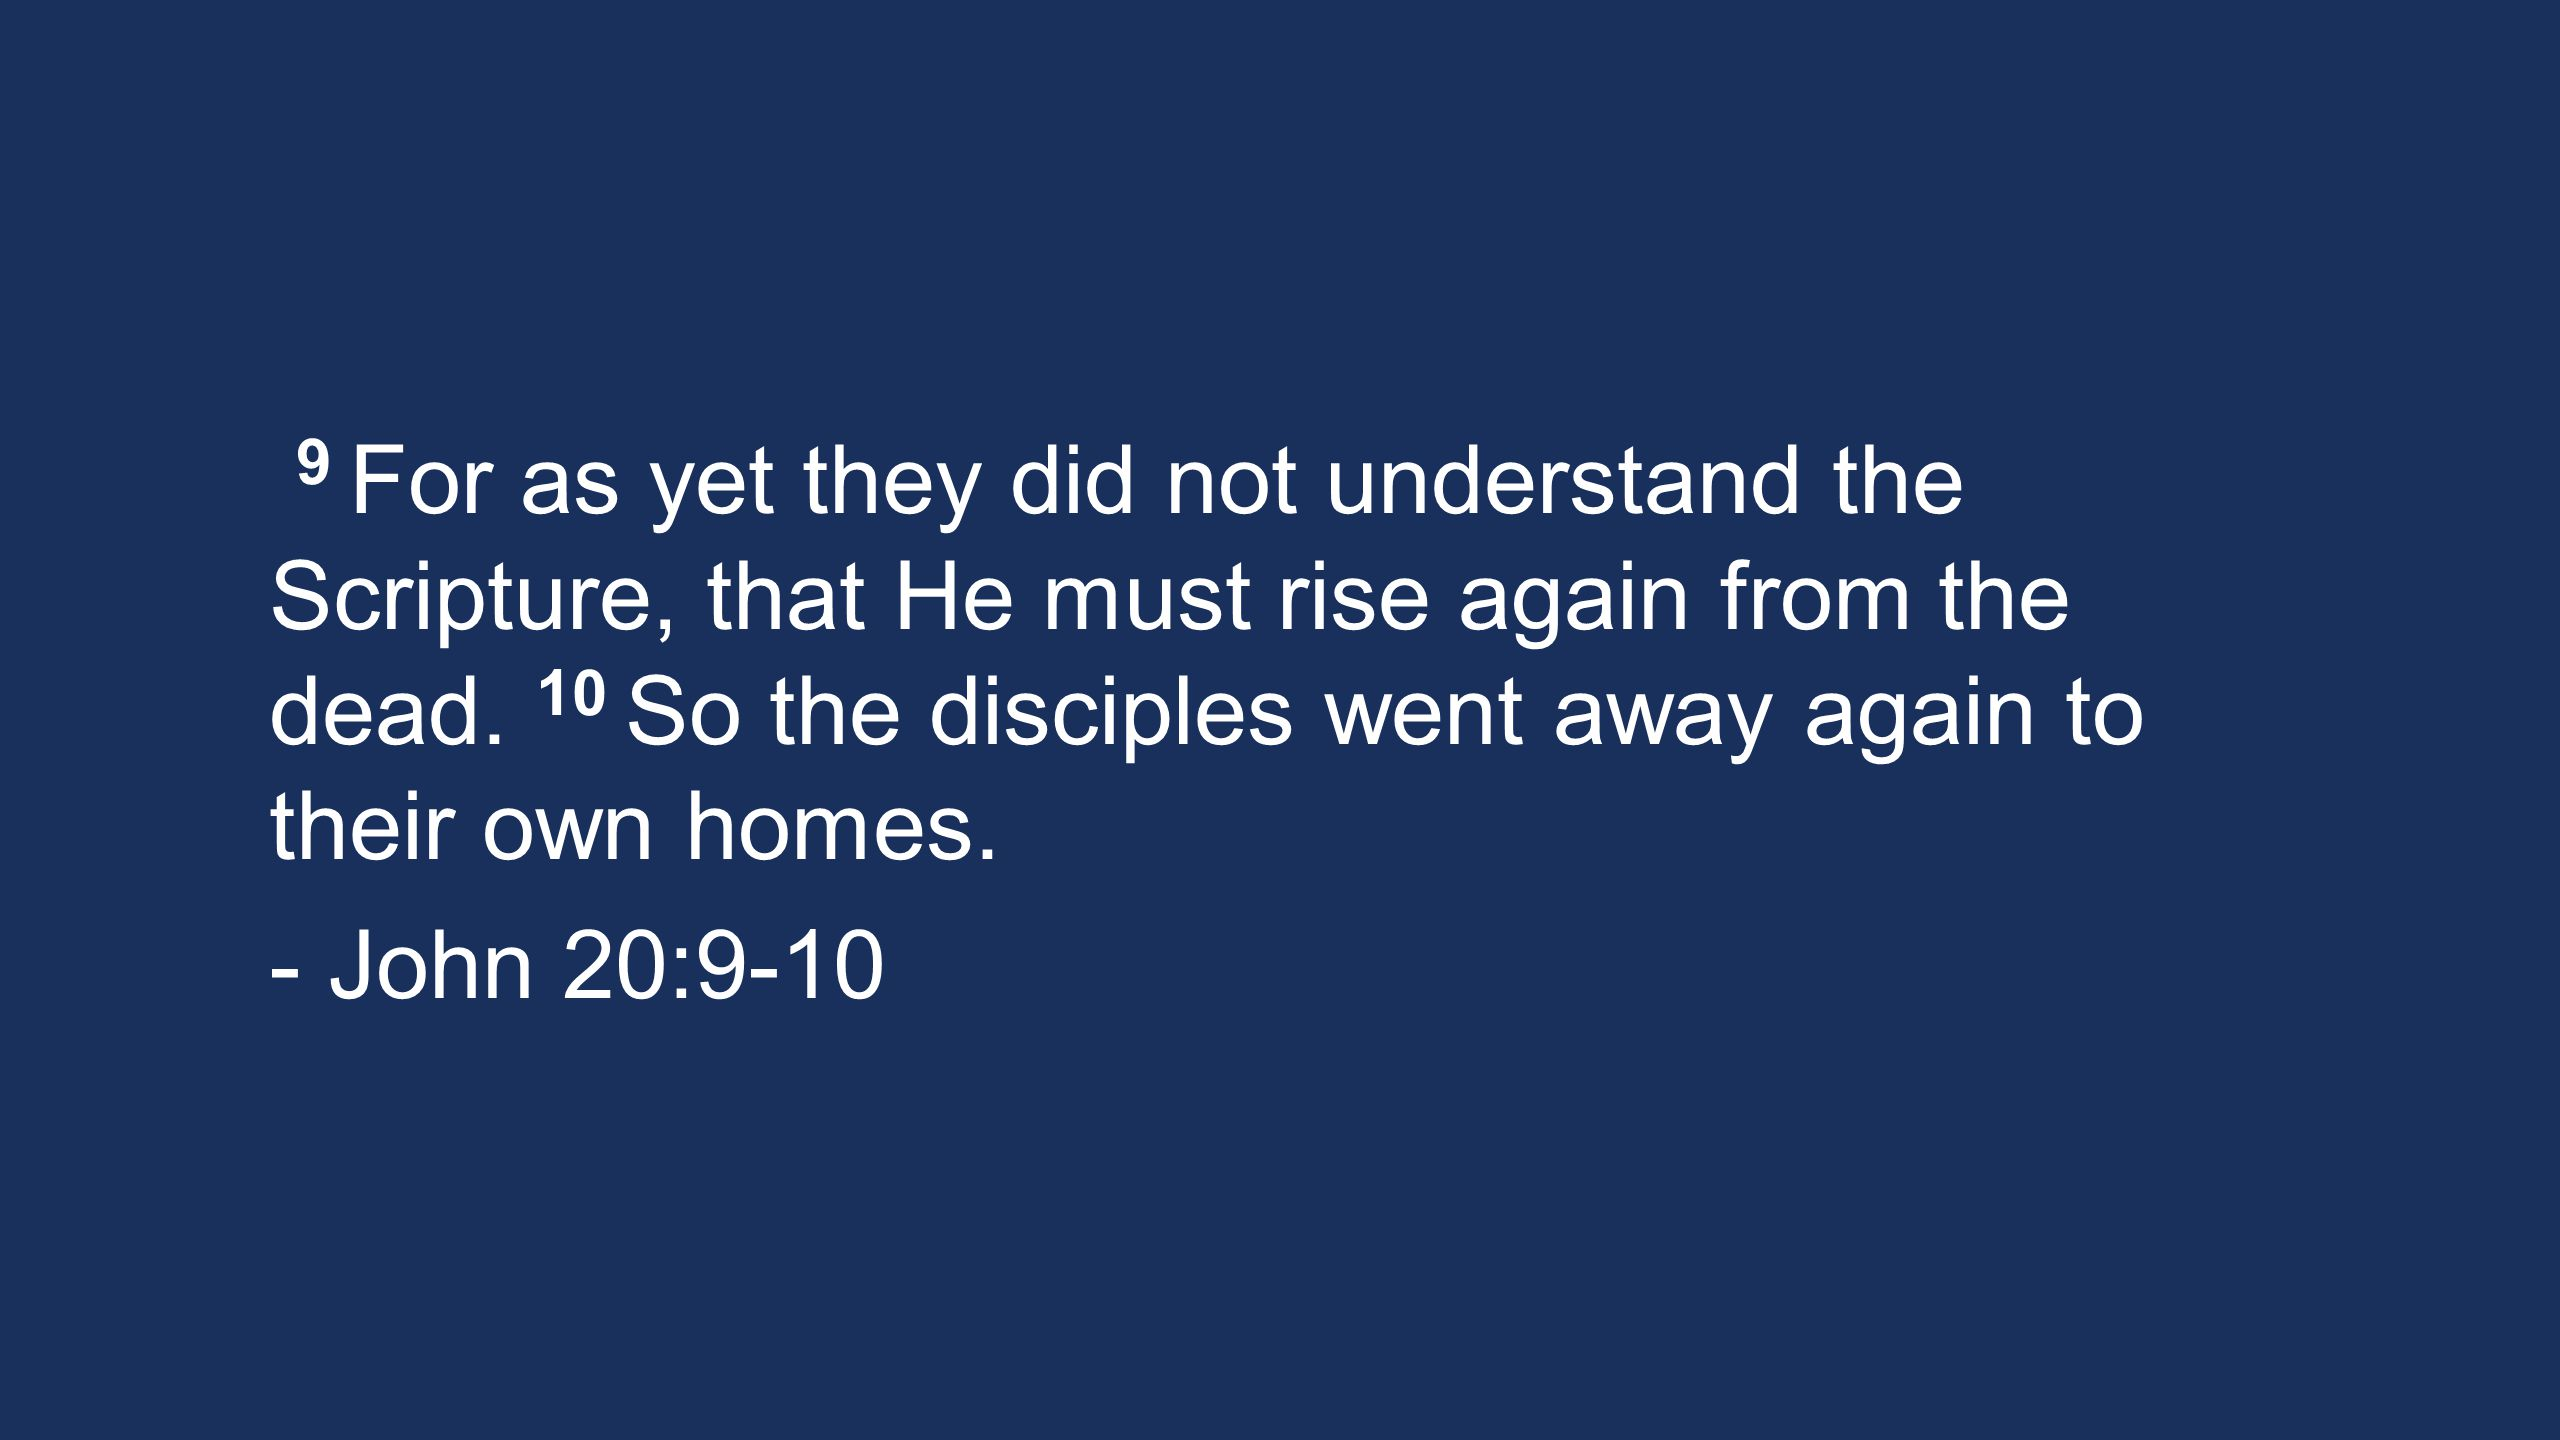 9 For as yet they did not understand the Scripture, that He must rise again from the dead. 10 So the disciples went away again to their own homes. - J